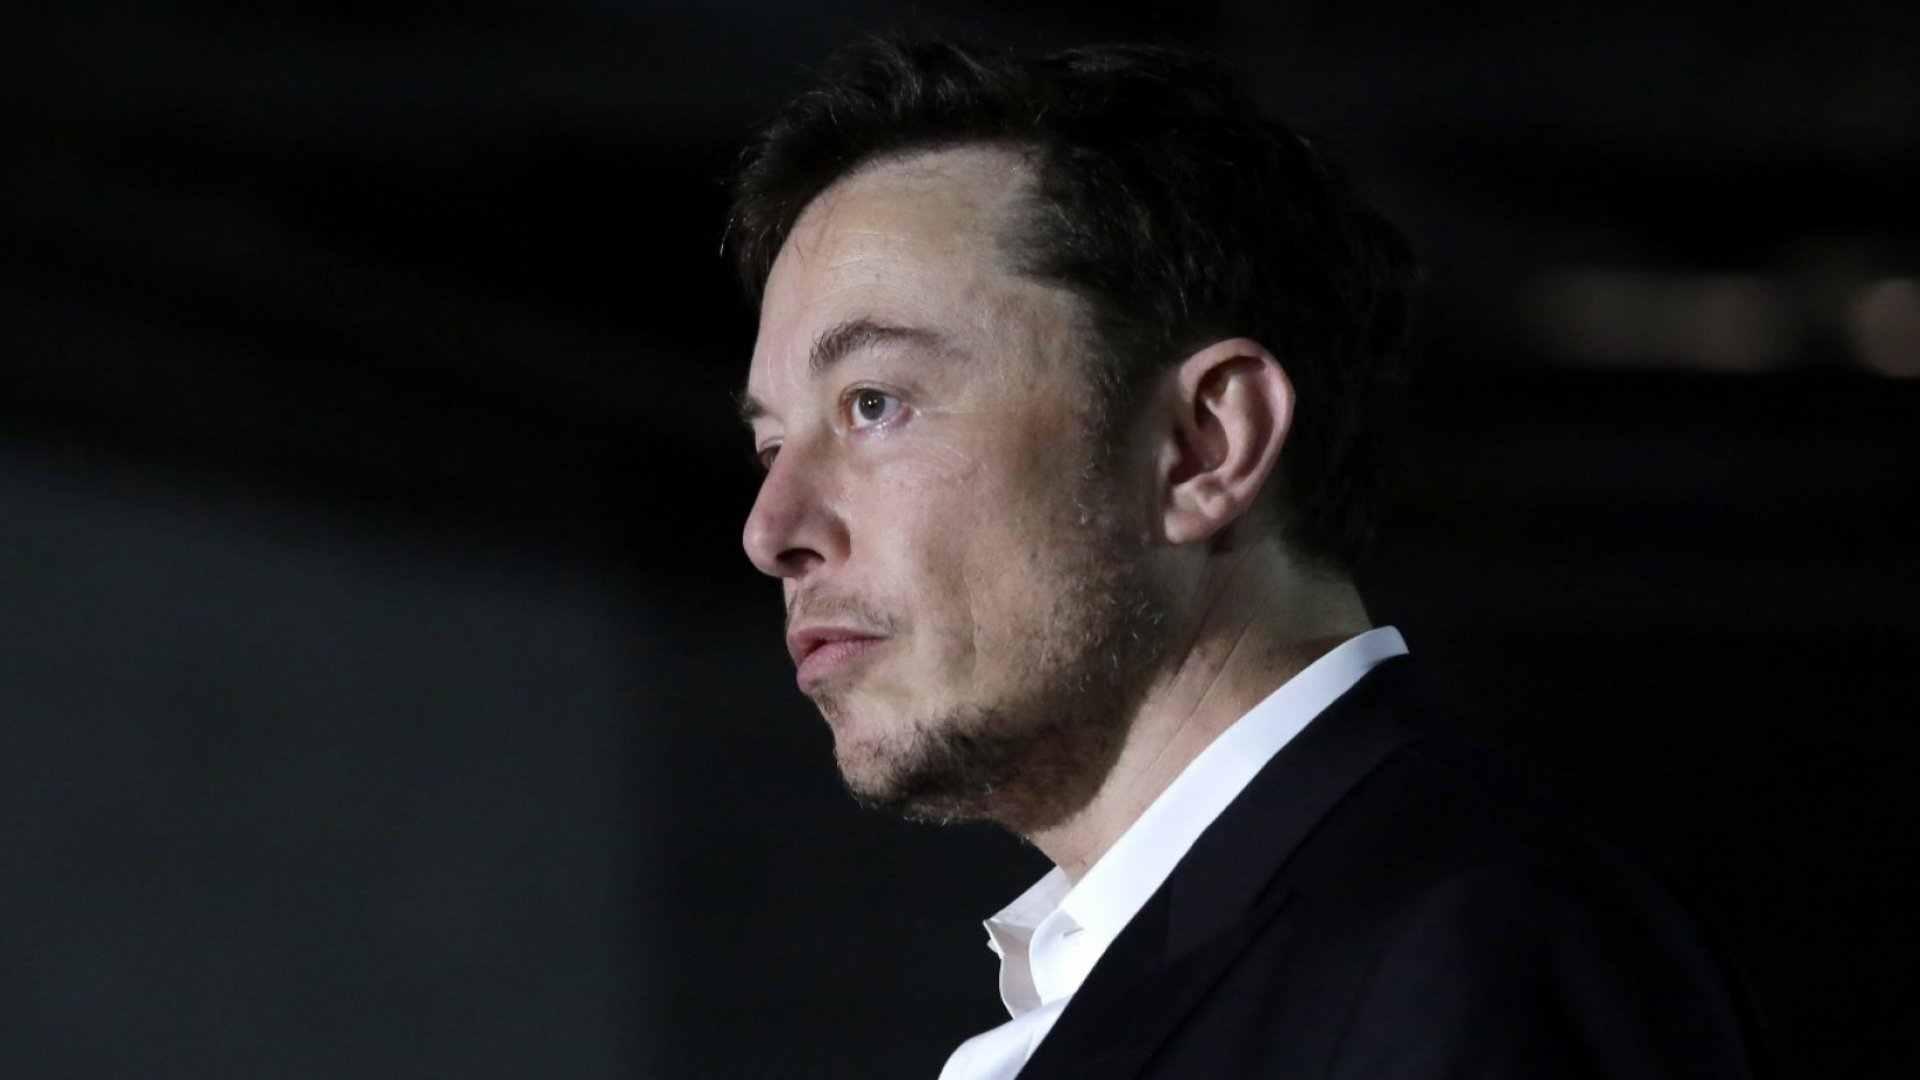 The 5 Biggest Bombshells From the SEC's Lawsuit Against Elon Musk